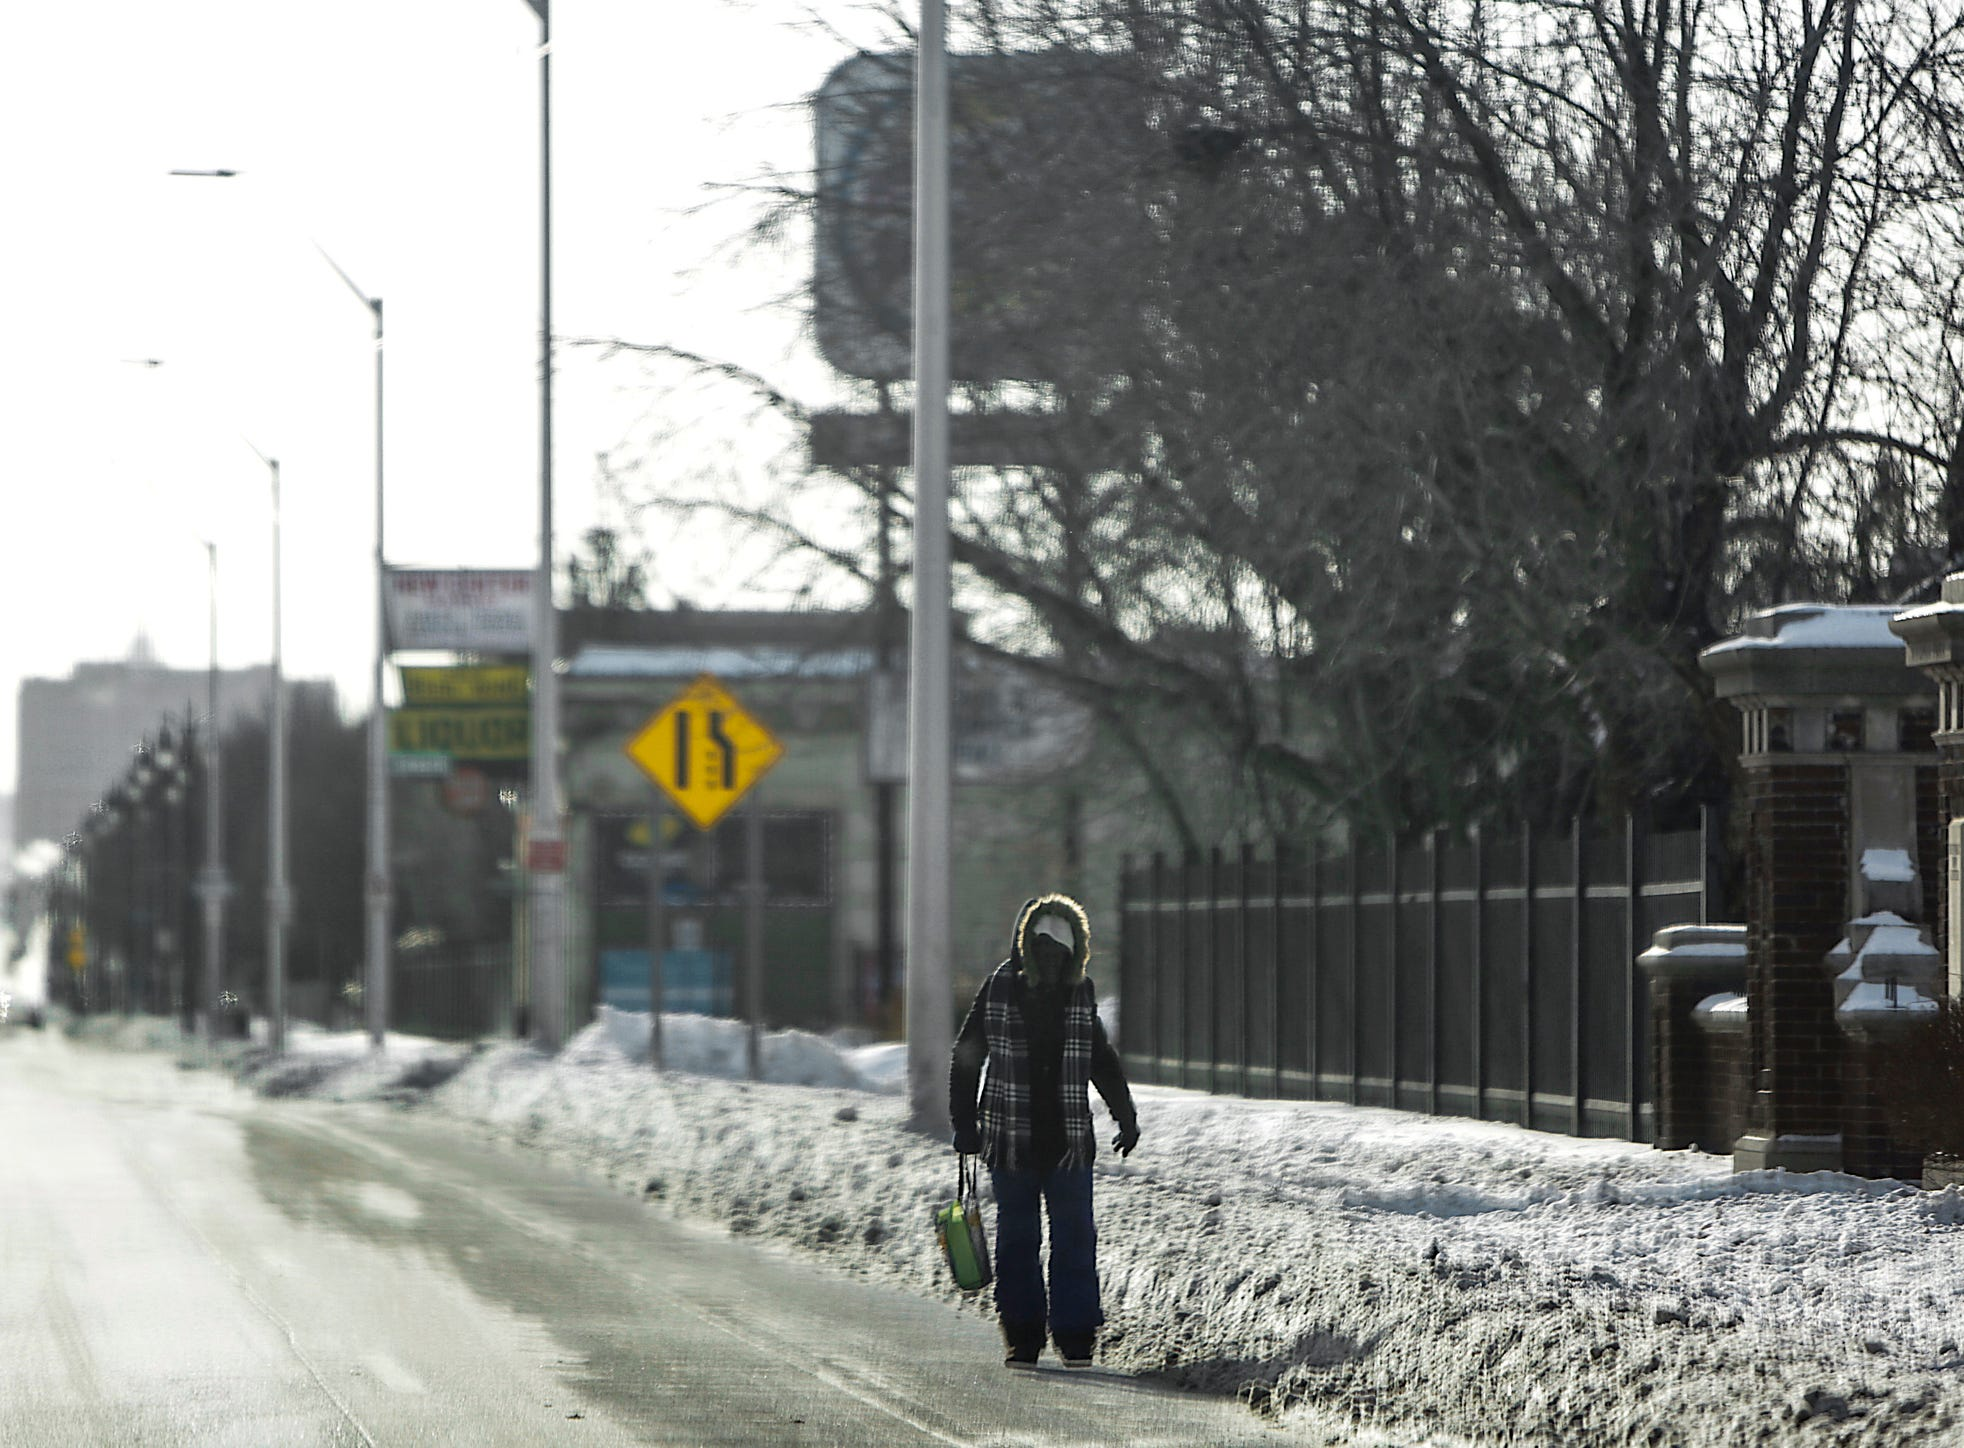 A woman walks in the street to avoid the snow-covered sidewalk, during subzero temperatures in Highland Park, Mich. on Wednesday, Jan. 30, 2018.